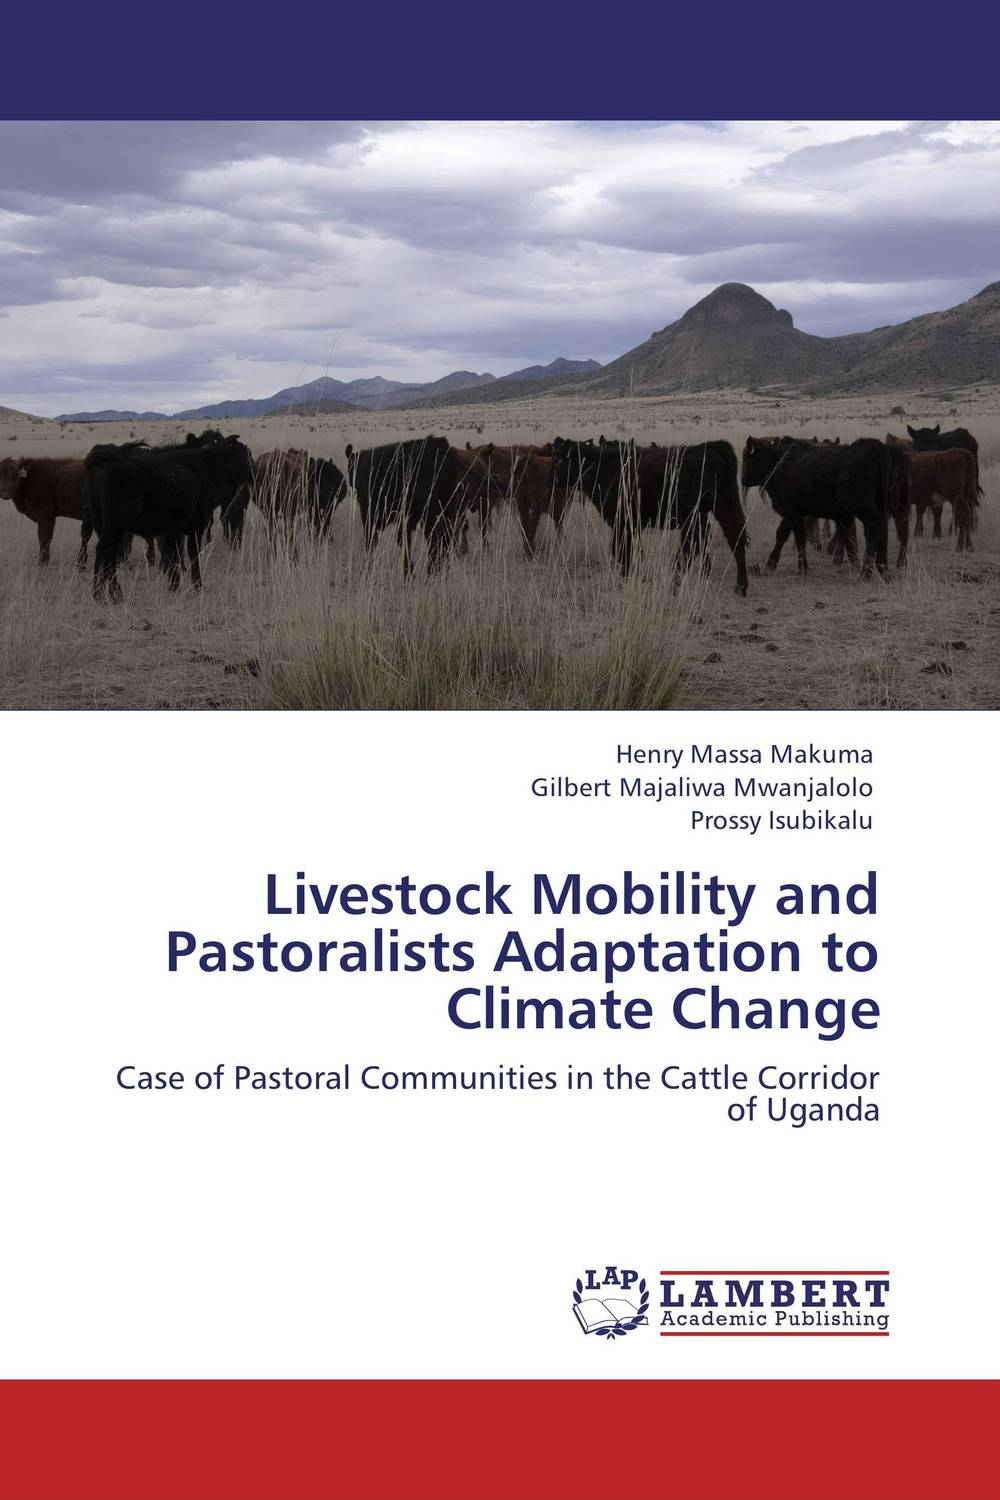 Livestock Mobility and Pastoralists Adaptation to Climate Change gurpreet kaur deepak grover and sumeet singh dental mobility and splinting